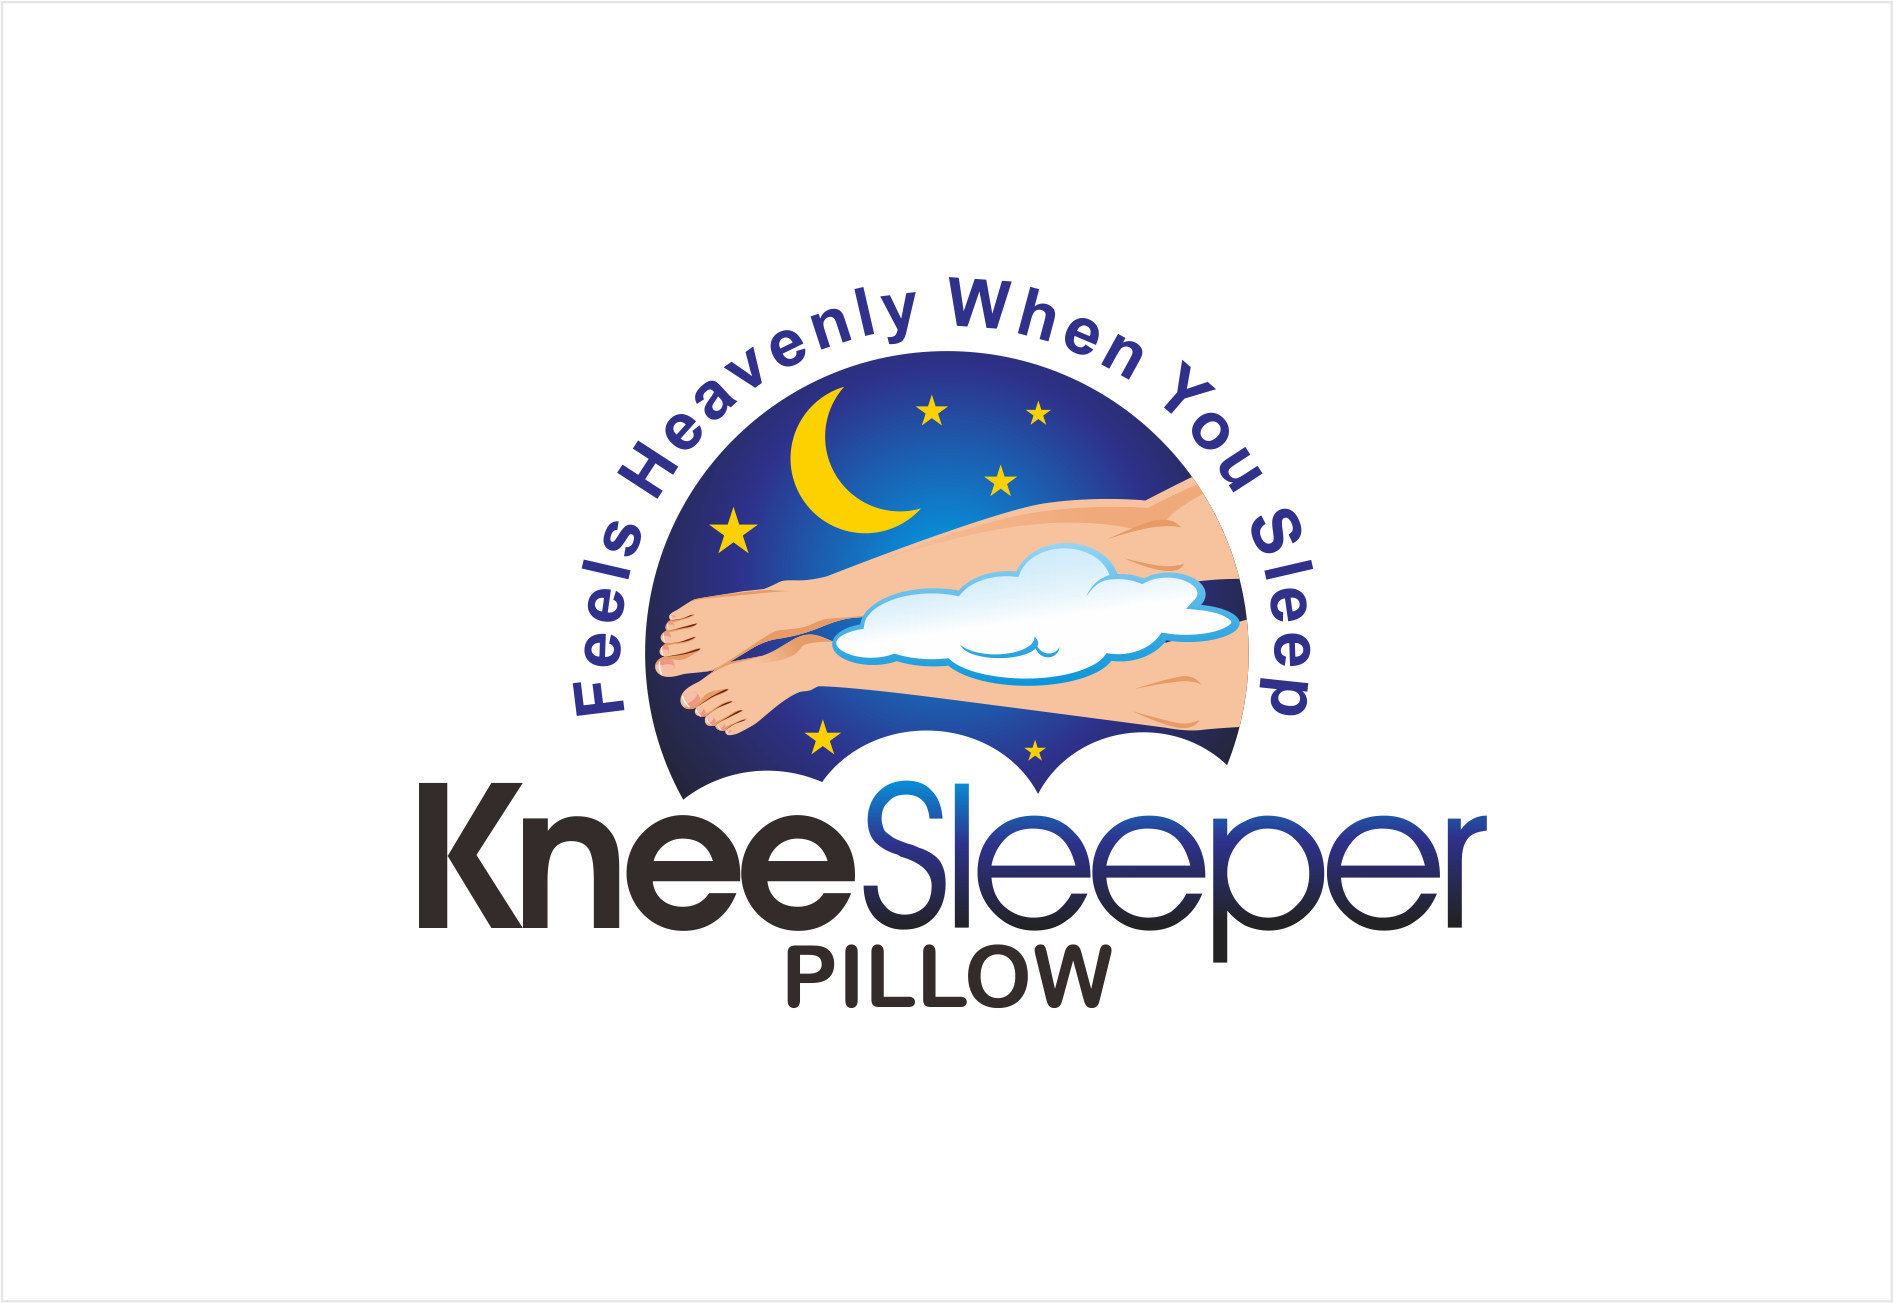 Create a product logo for the KneeSleeper!